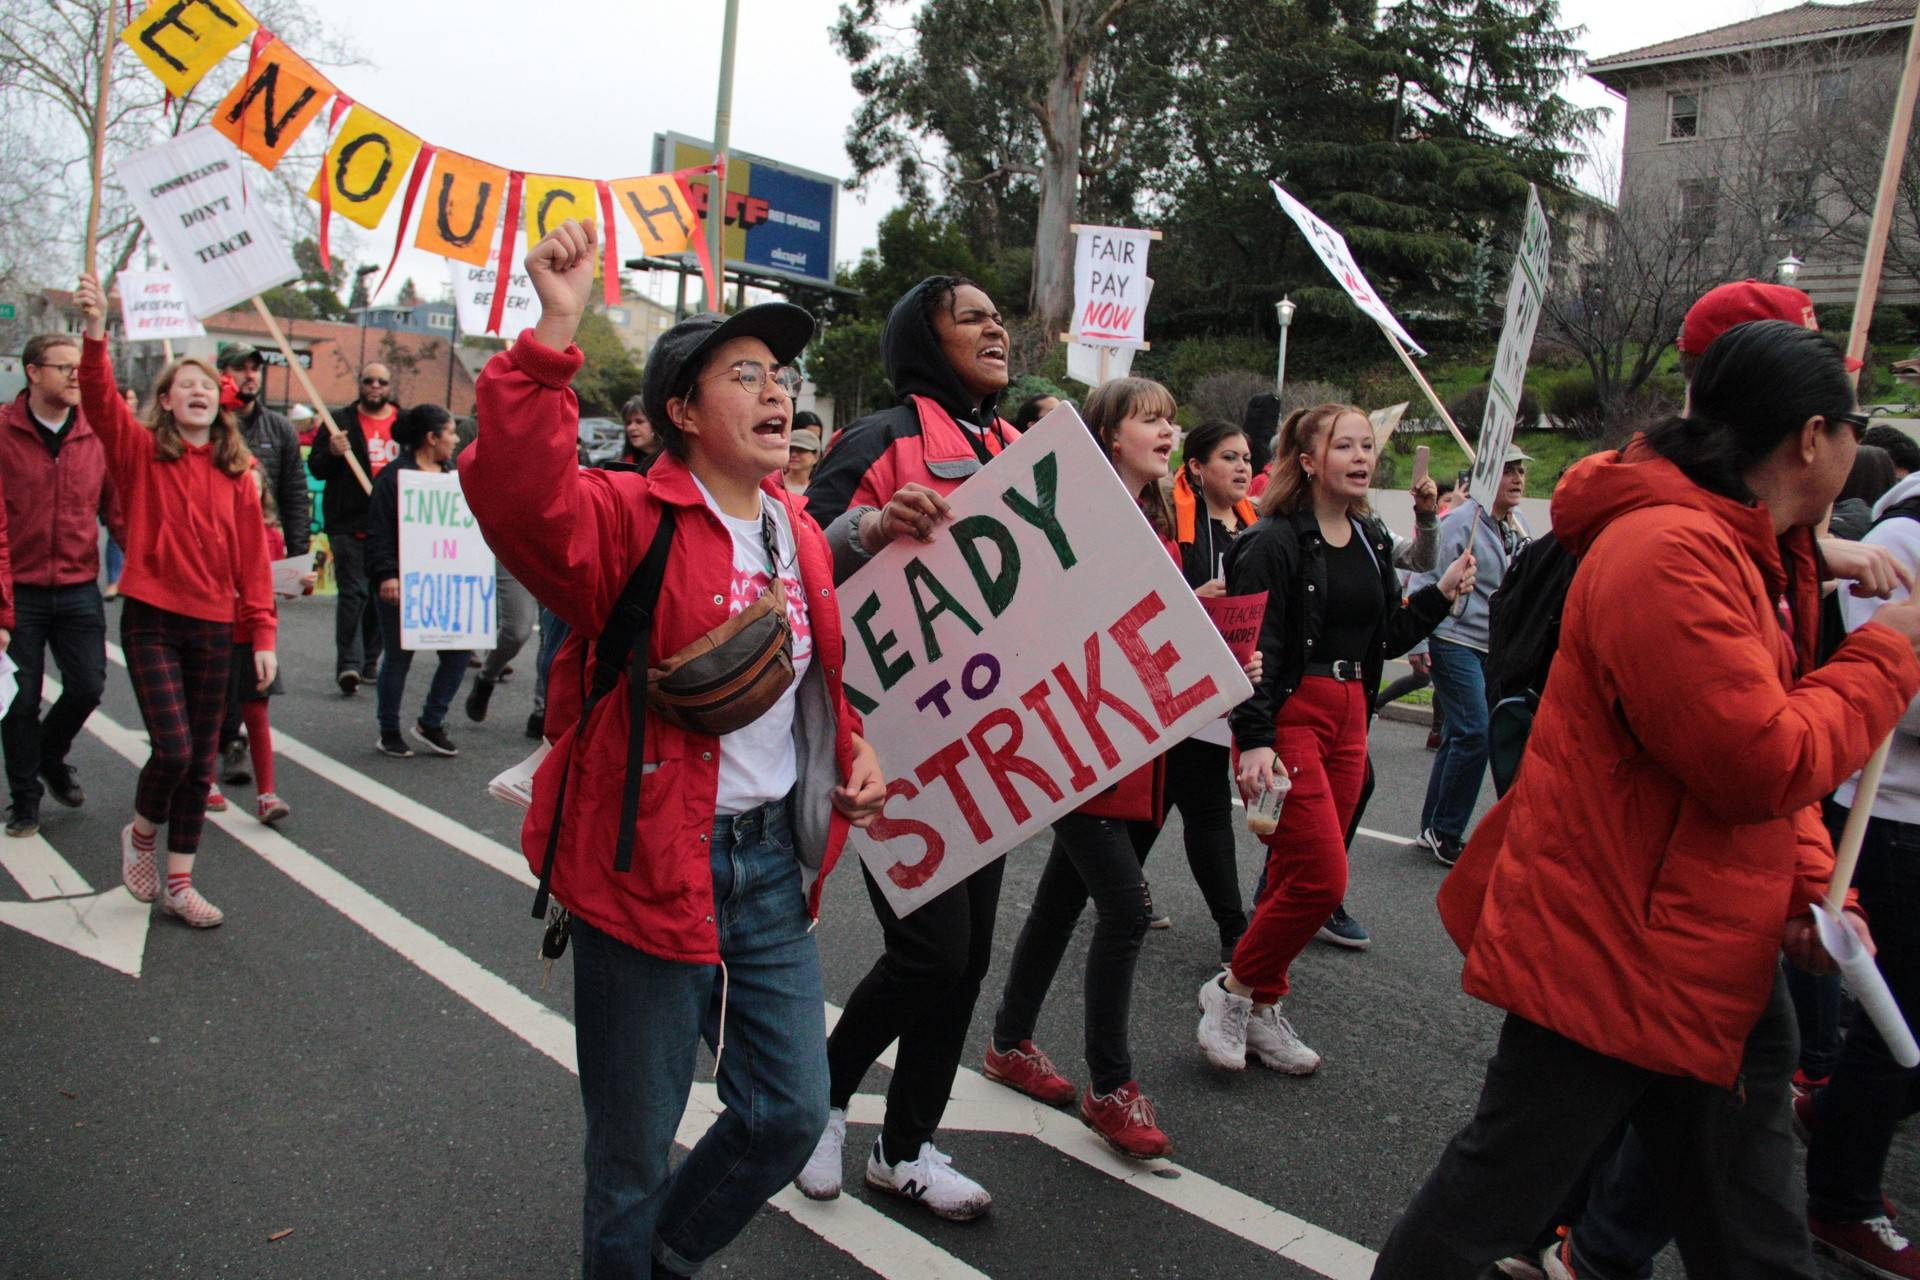 Oakland teachers march during an unsanctioned 'sickout' on Jan. 18, 2019. On Saturday, the teachers union announced that the teachers would go on strike starting Thursday, Jan. 21. Monica Lam/KQED